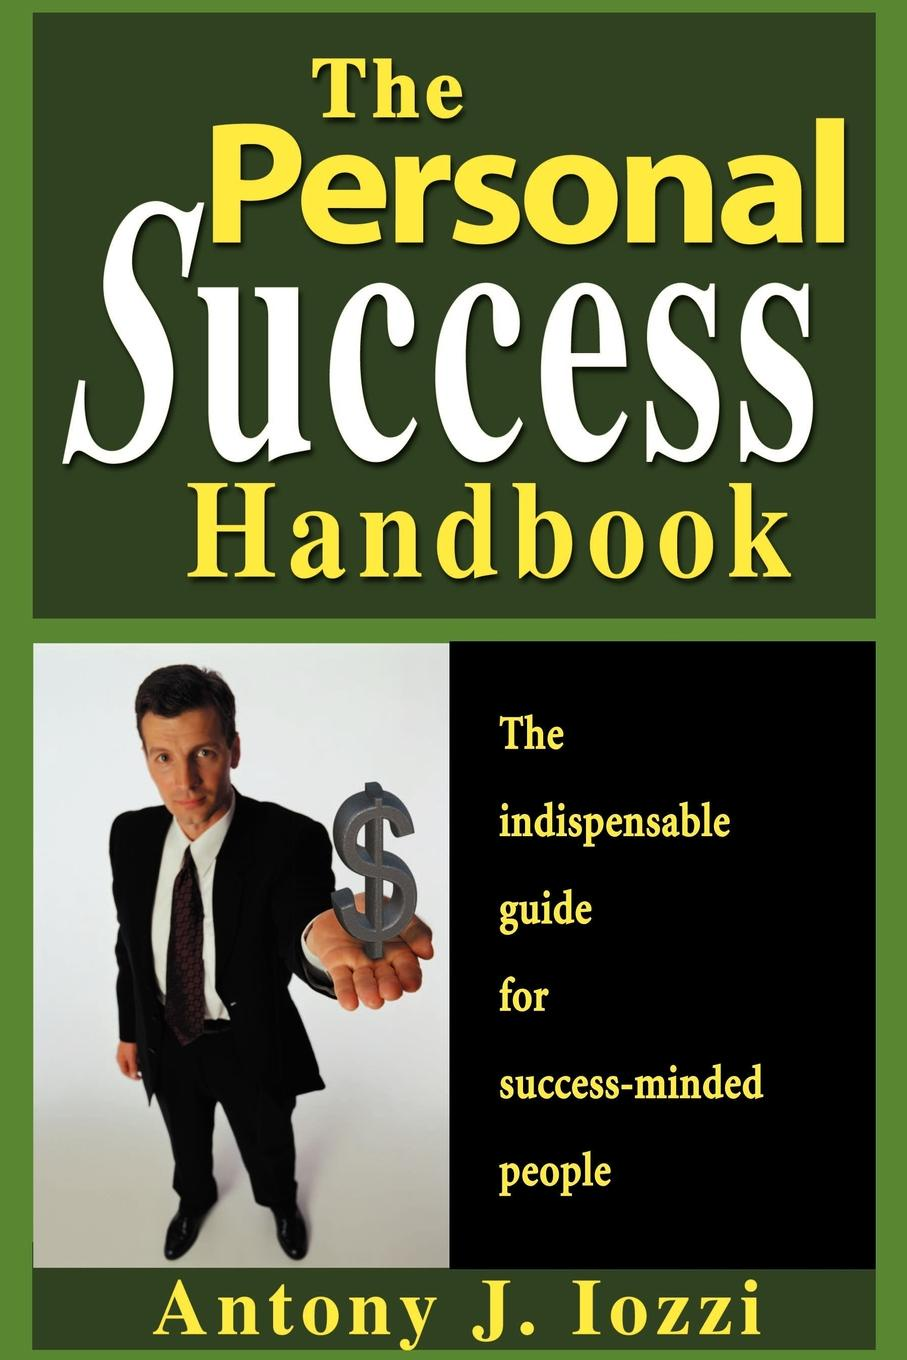 Antony J. Iozzi The Personal Success Handbook. How to Achieve Personal Excellence and Lead Yourself to Wealth, Health and Happiness matt tenney the mindfulness edge how to rewire your brain for leadership and personal excellence without adding to your schedule